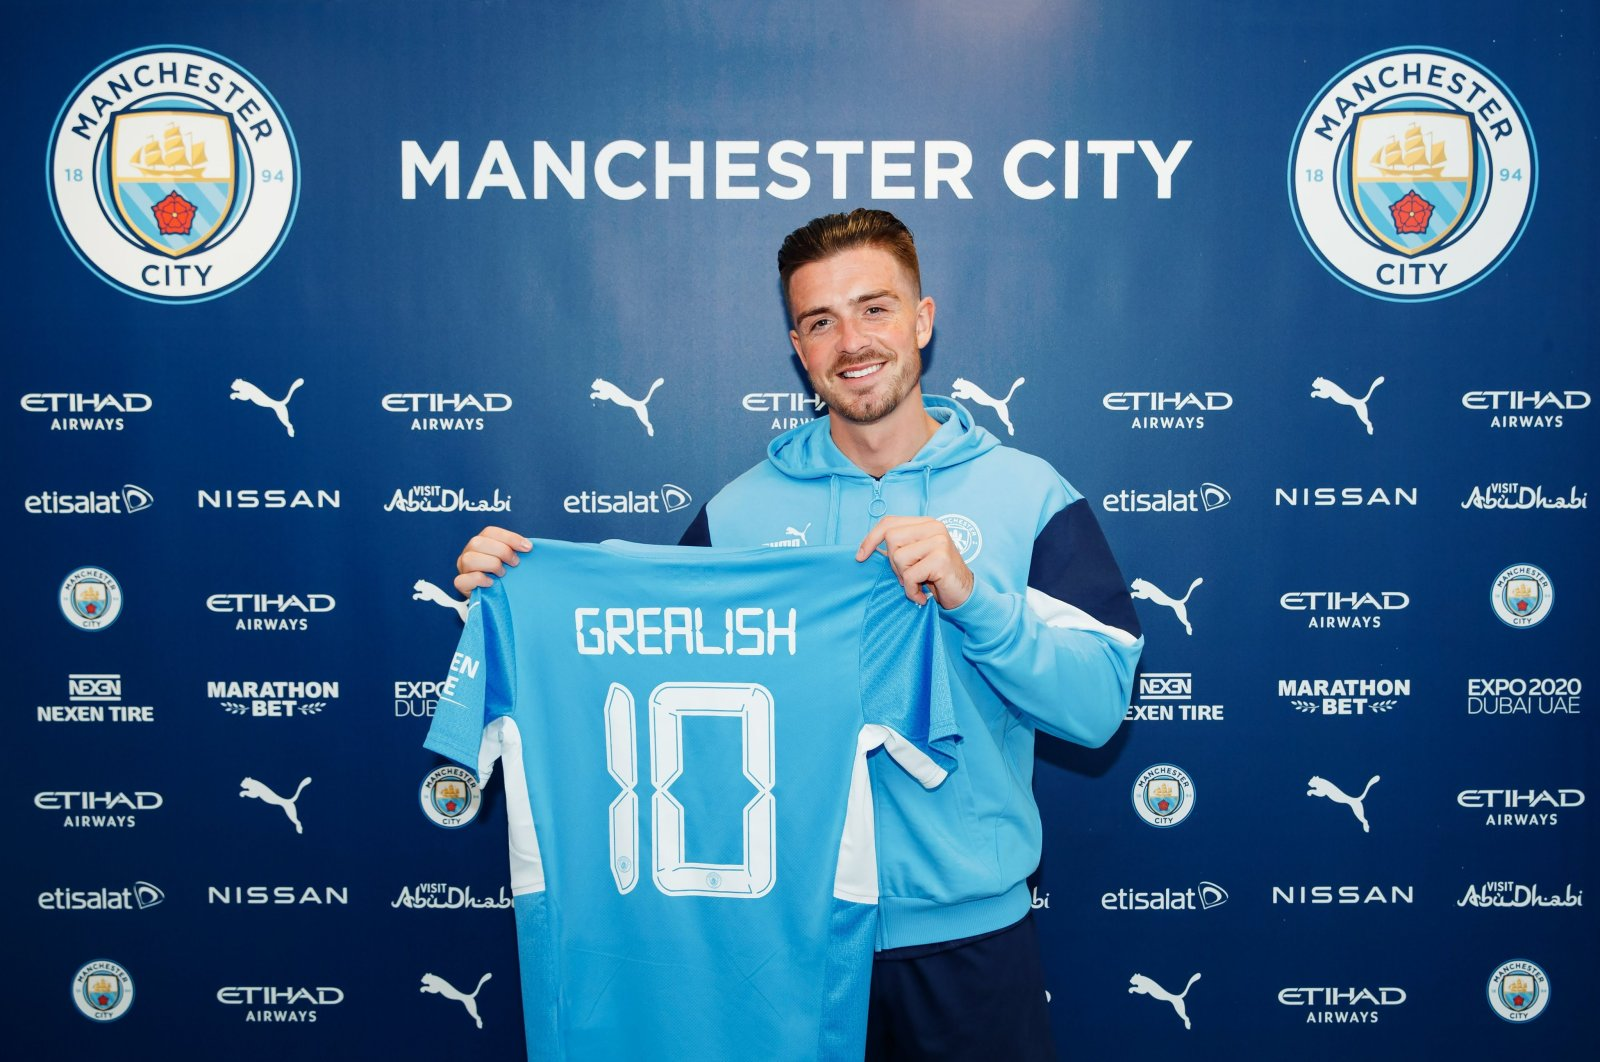 Manchester City unveils new signing Jack Grealish at Manchester City Football Academy in Manchester, England, Aug. 05, 2021. (Photo: @ManCity)